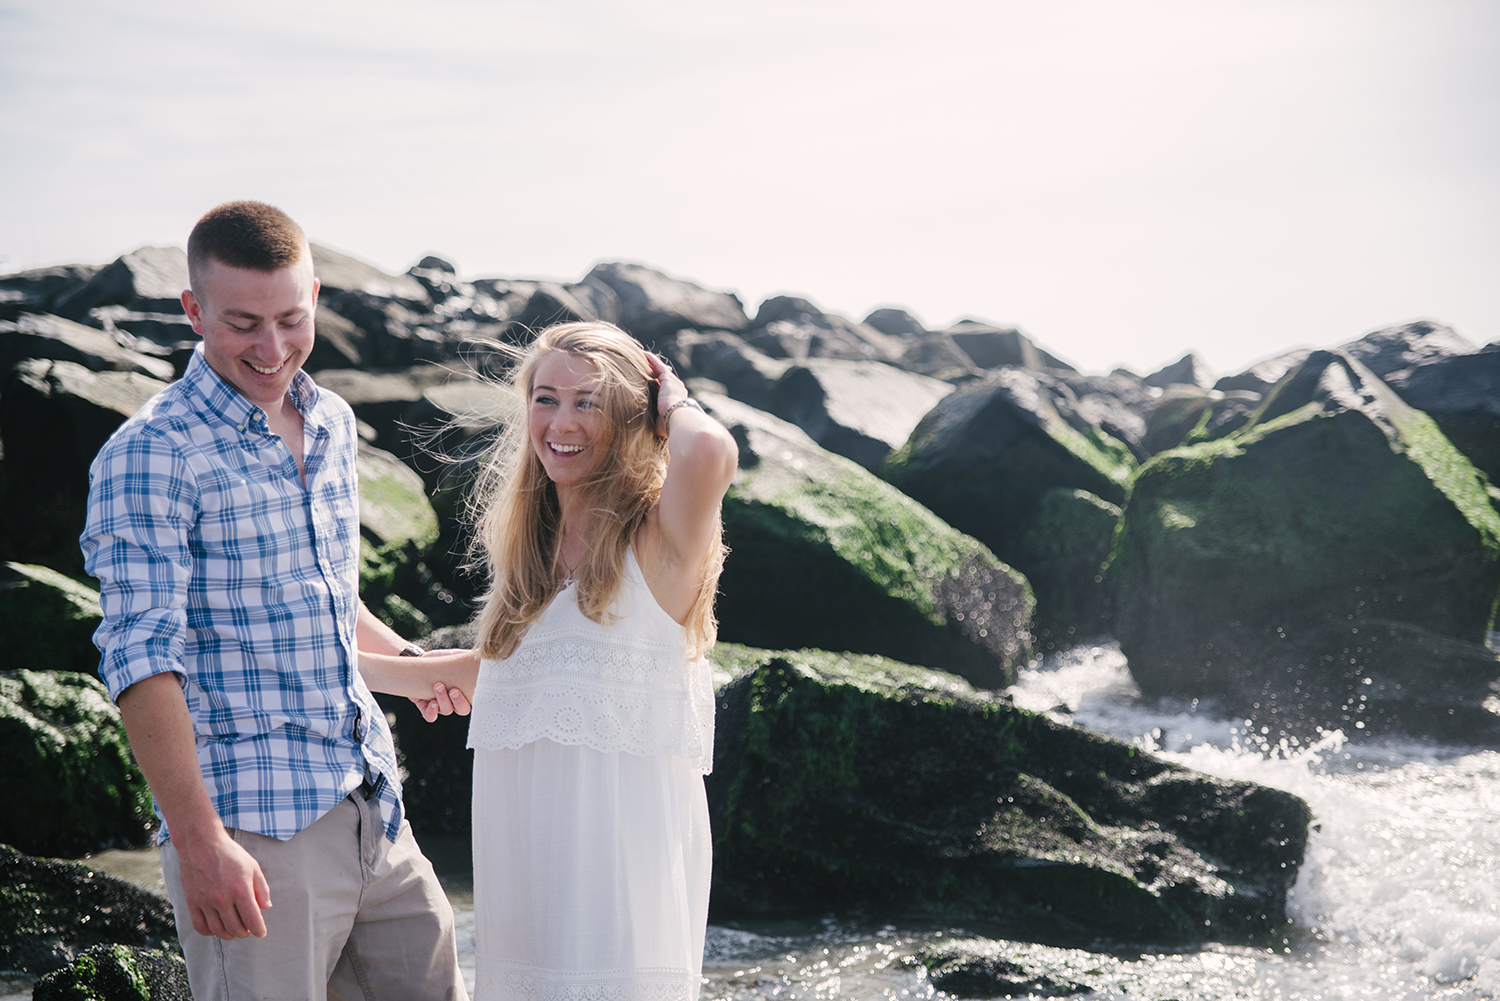 Miller Family- Modern Heirloom- Seaside Family Photo Session- Belmar New Jersey-  Olivia Christina Photo-134.1.jpg